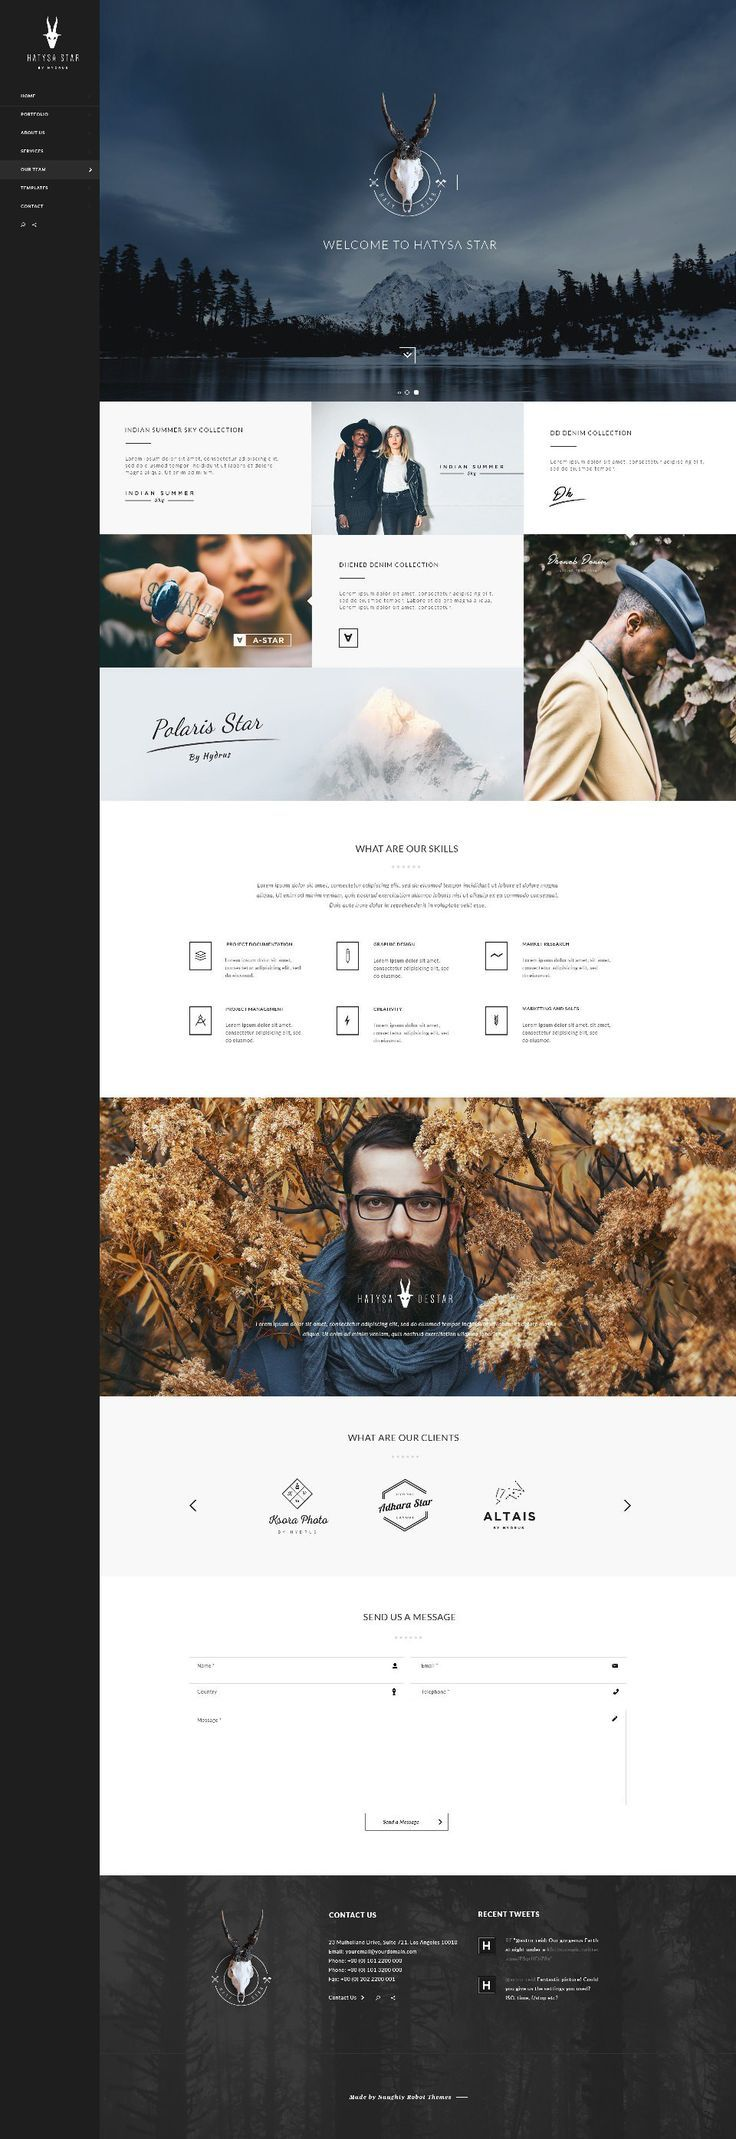 Hydrus Web Design Inspiration by naughtyrobot: